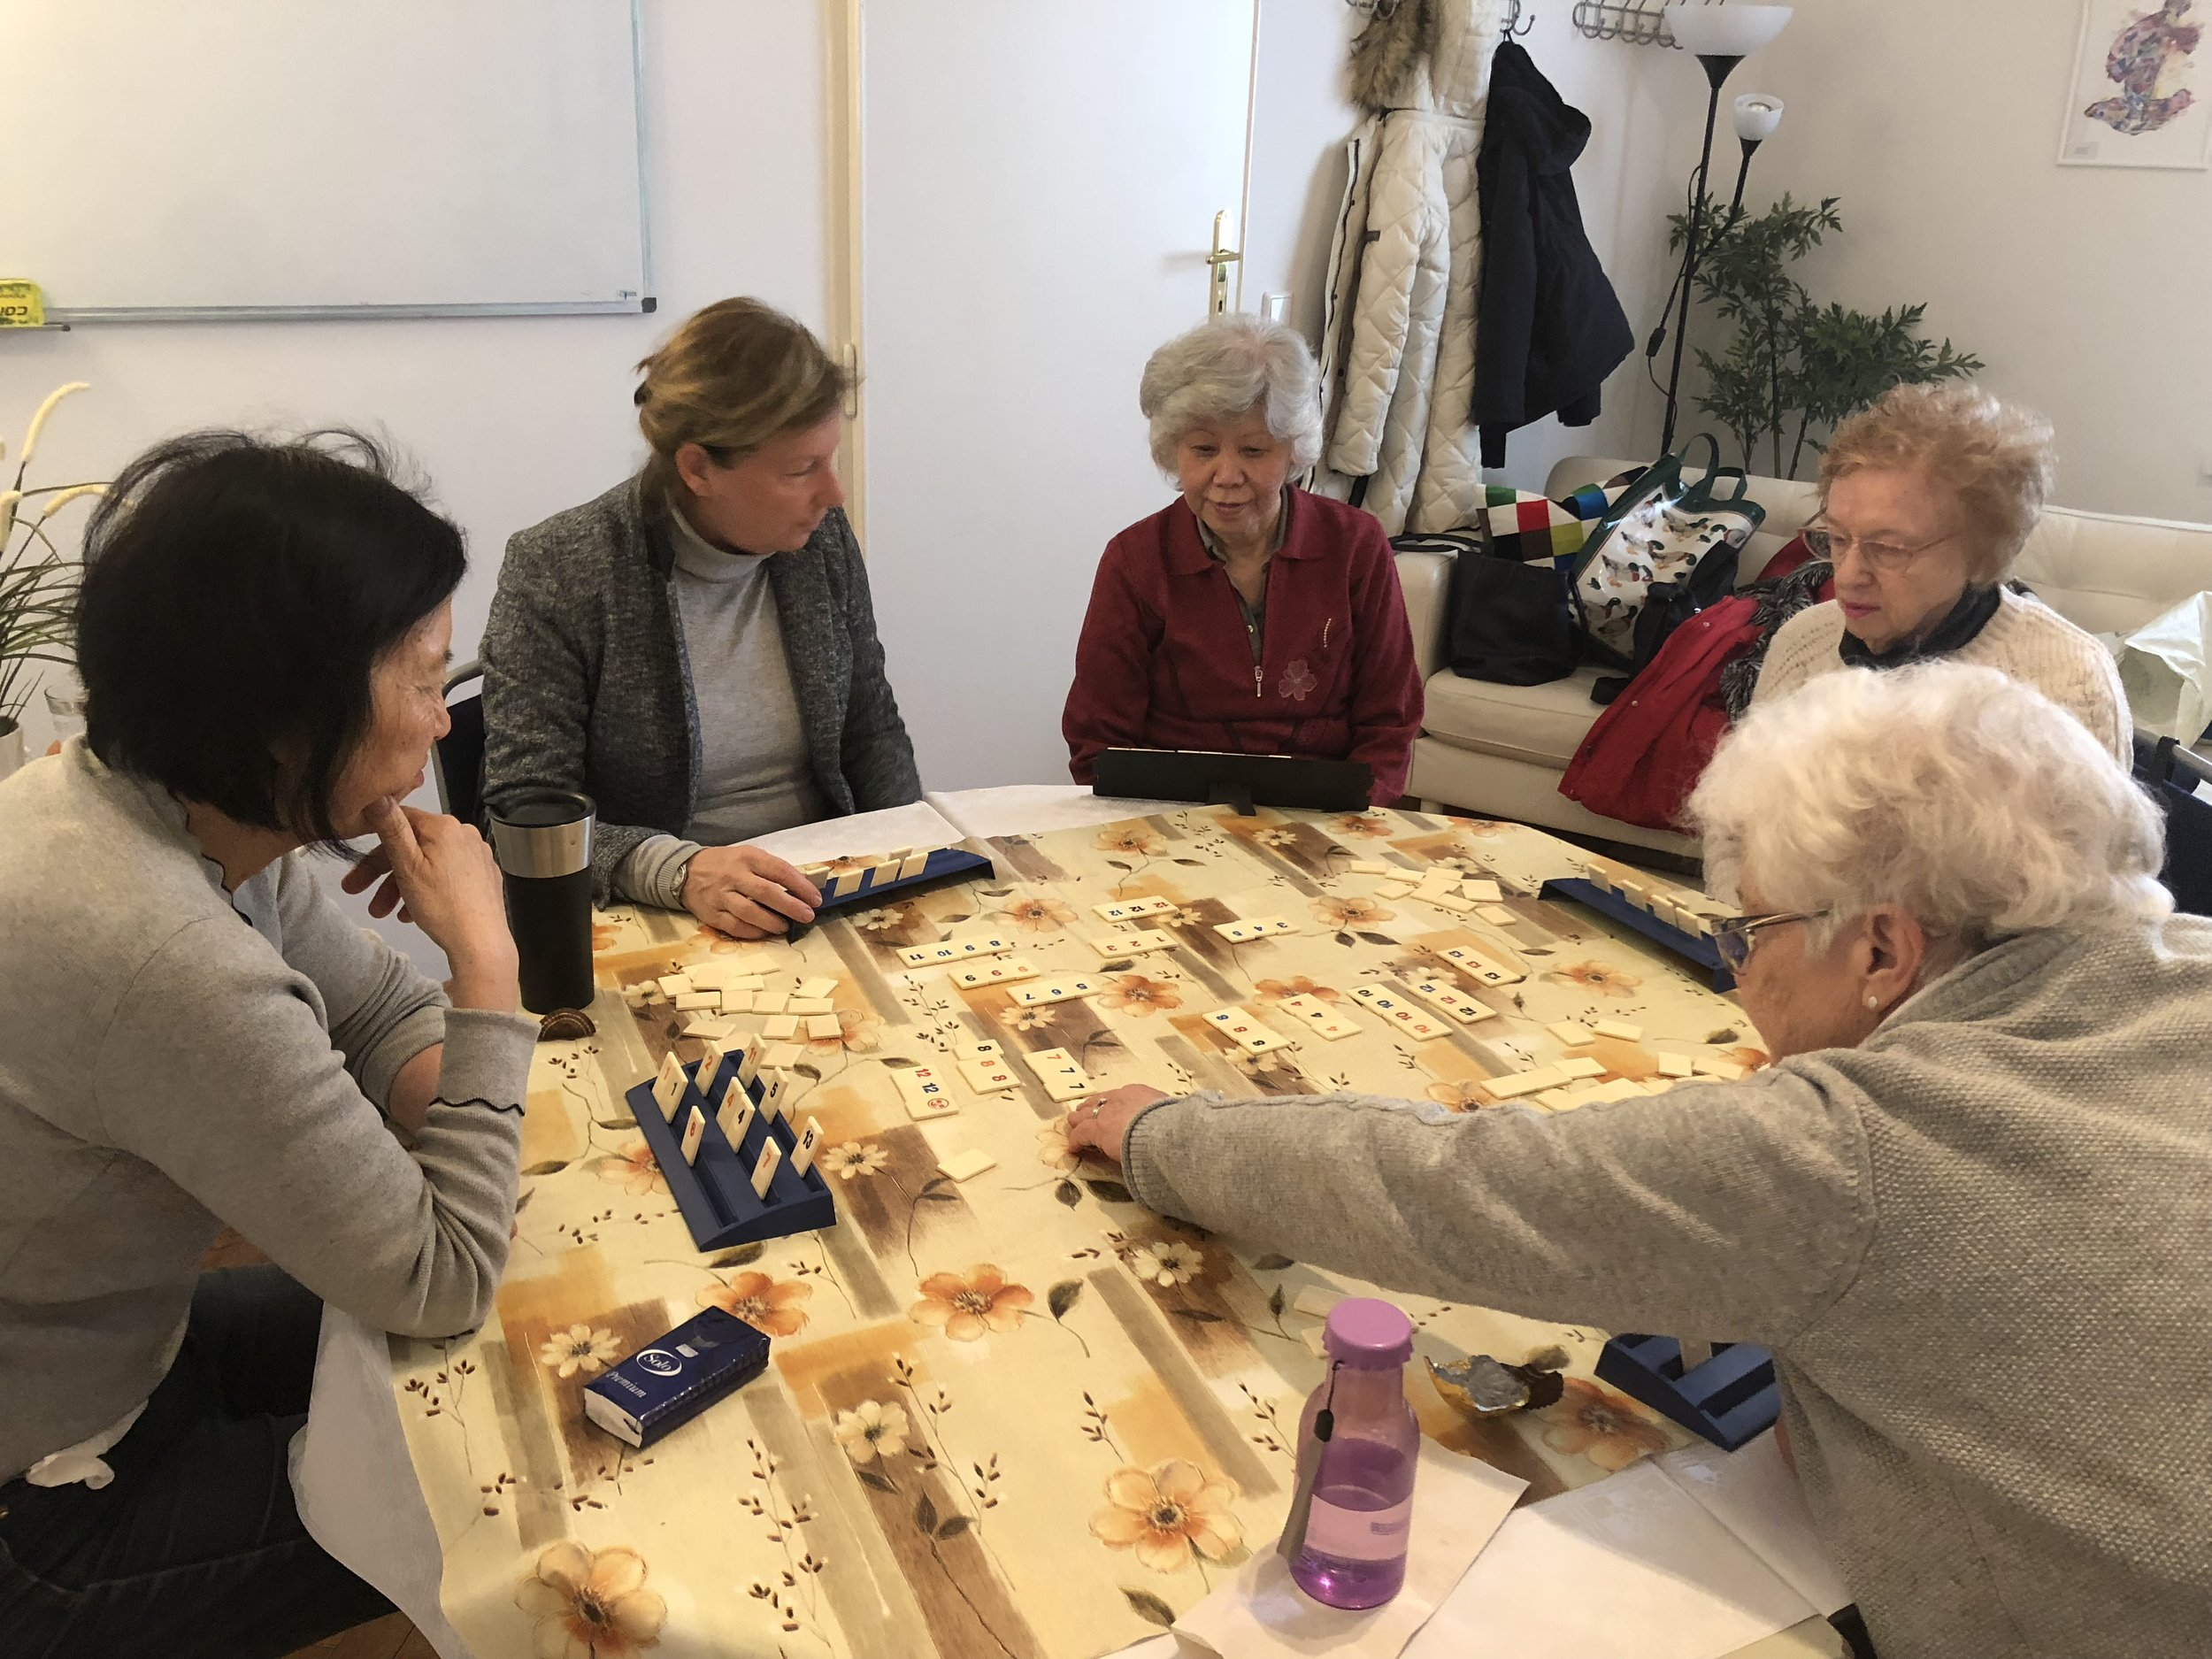 - GAMES GALOREThursday (weekly) at 10:00 AWA ClubhouseThe Scrabble Group has extended its repertoire to include Rummikub - a numbers game, Banana - a fast paced numbers game and Boggle. Come and try your luck.